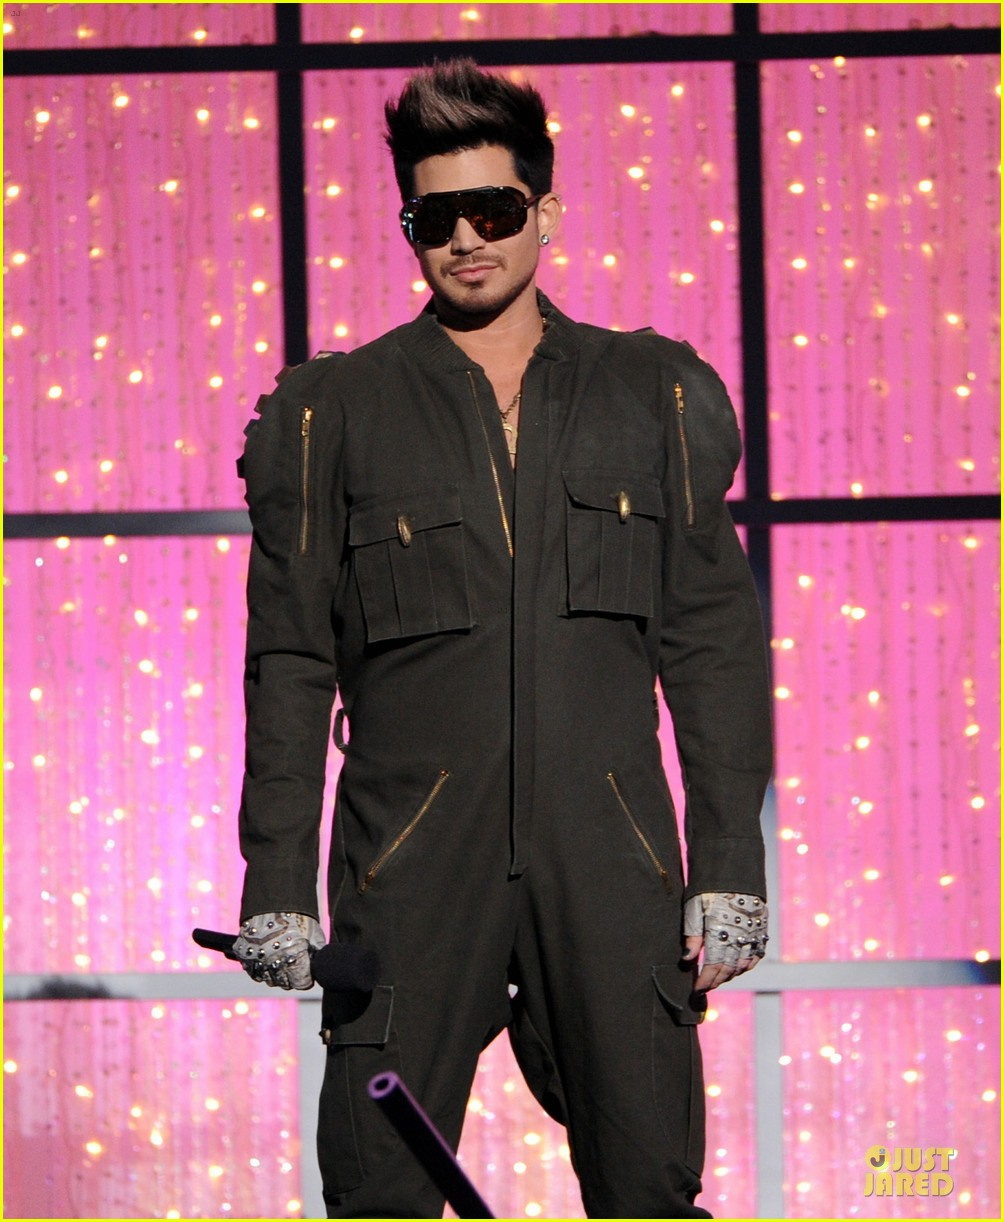 adam lambert vh1 divas performances watch now 09